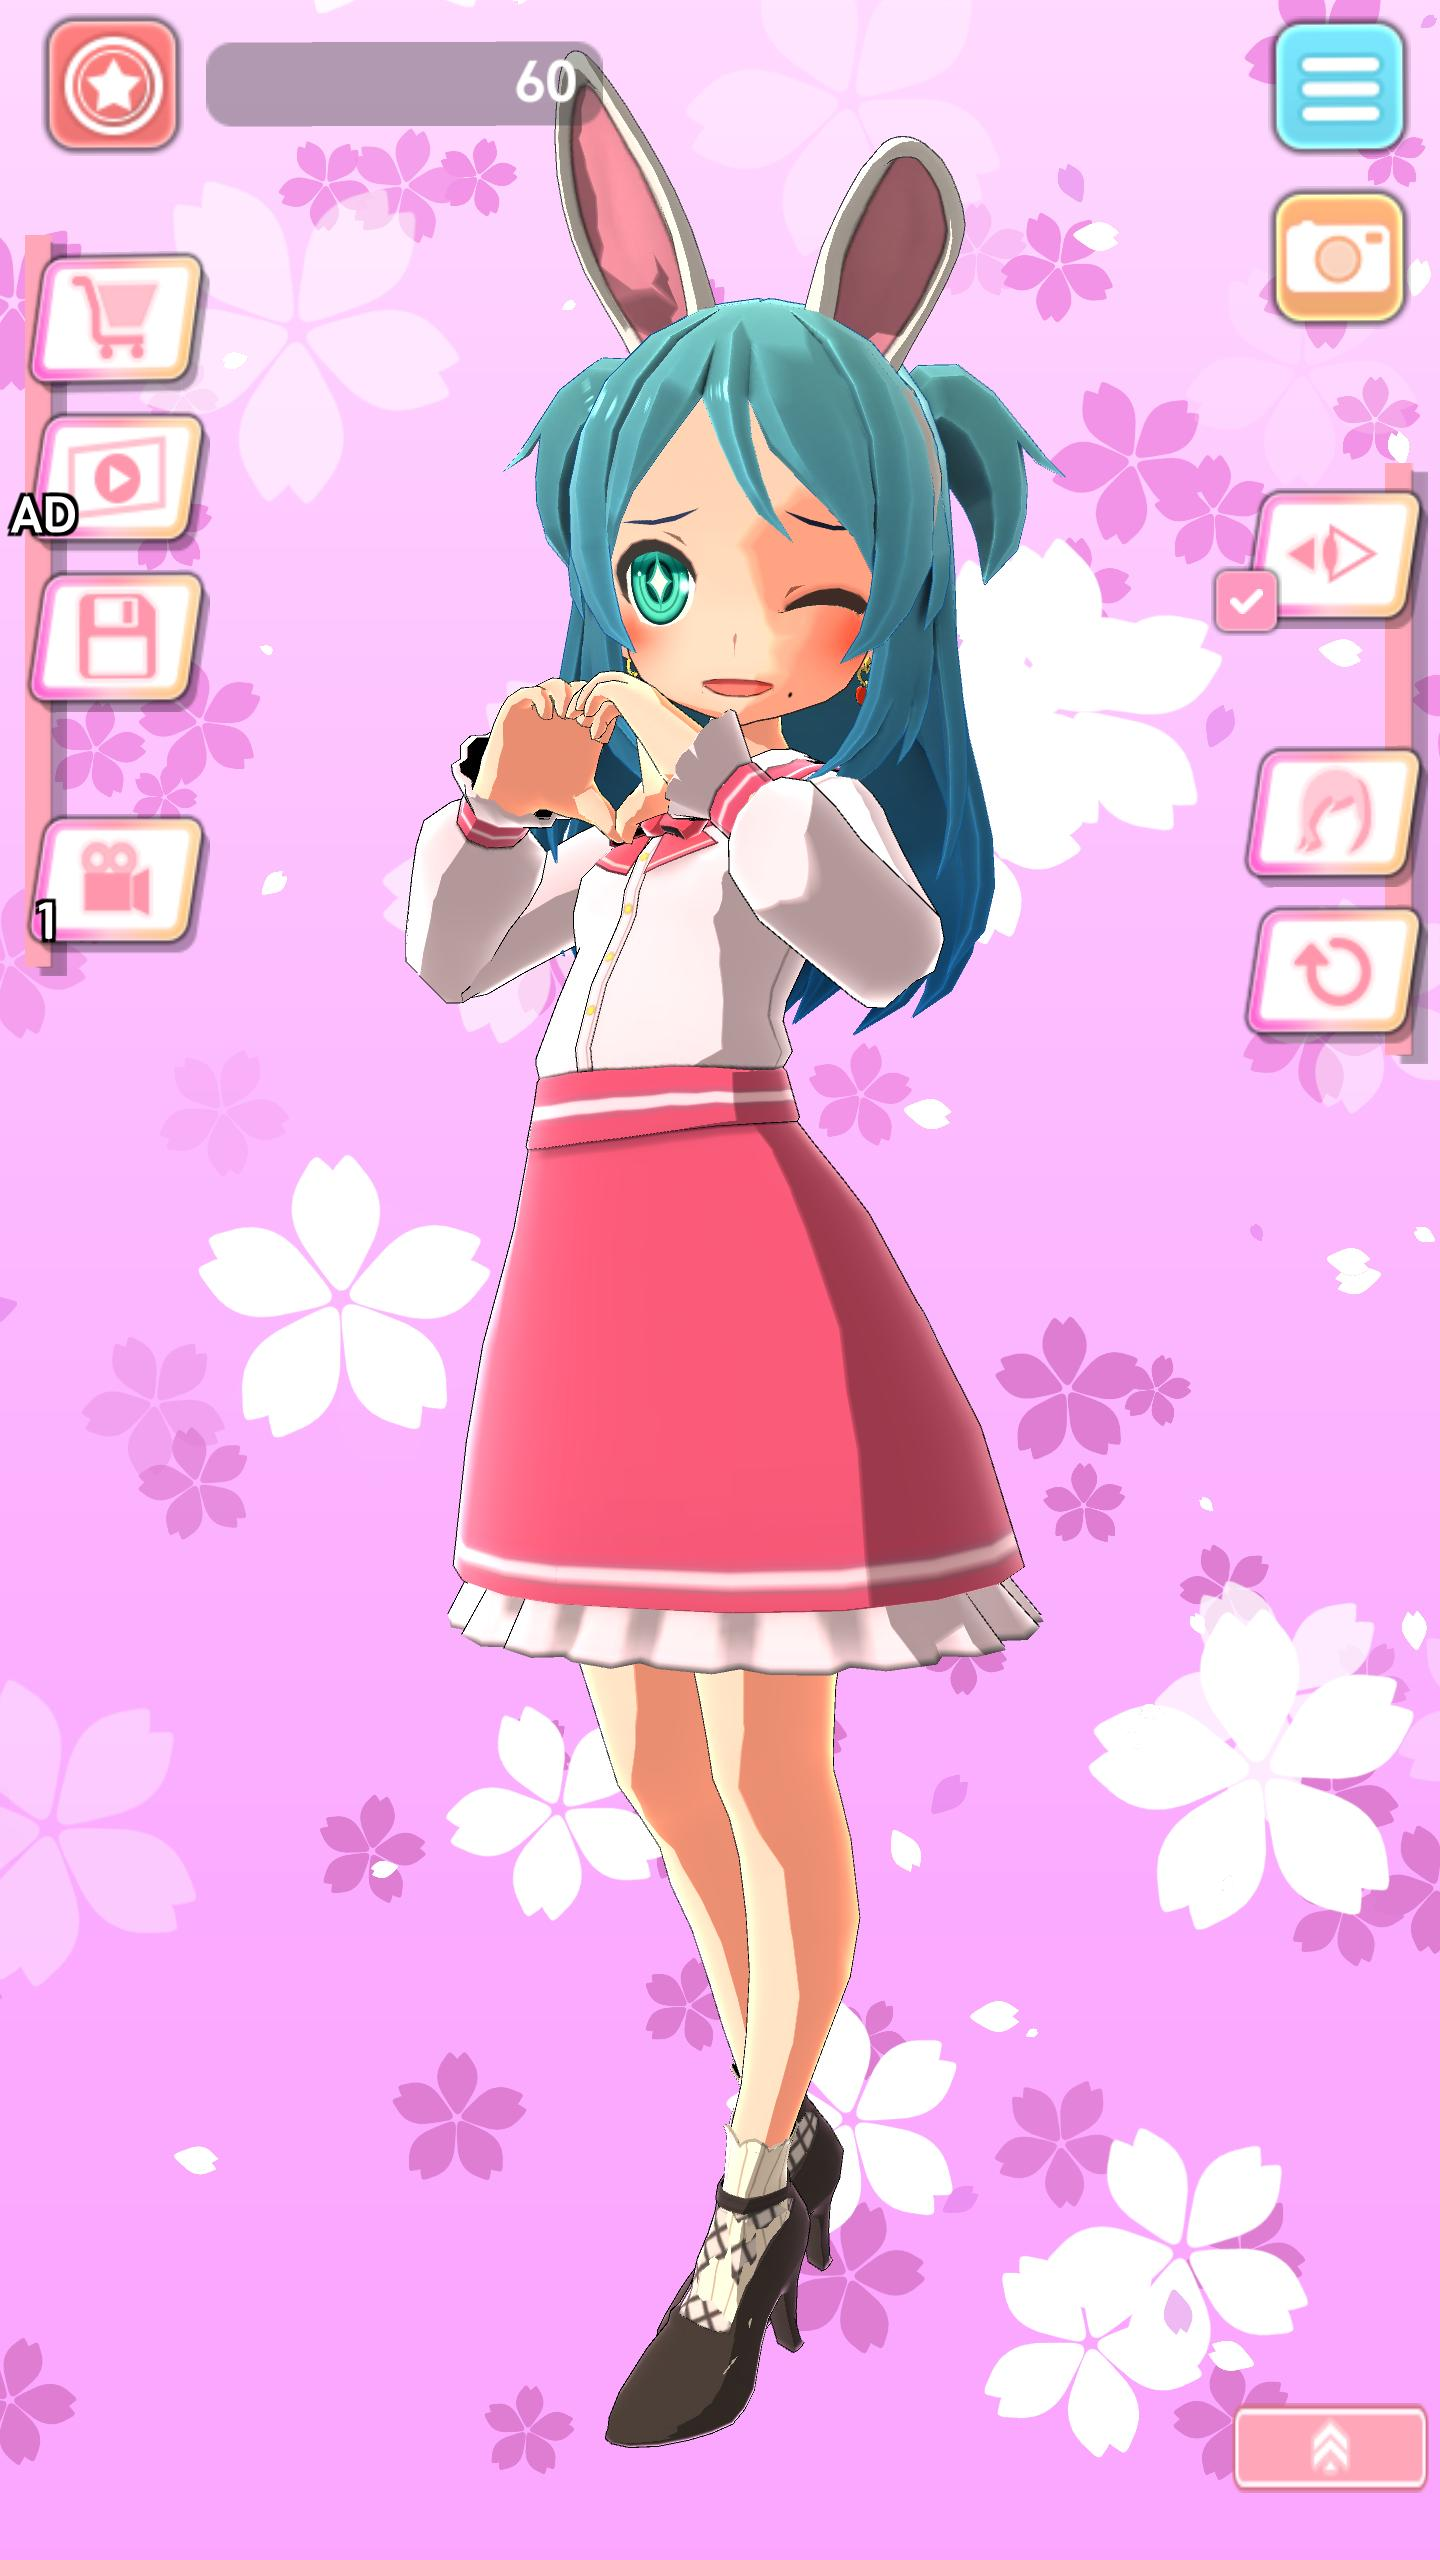 Easy Style - Dress Up Game for Android - APK Download